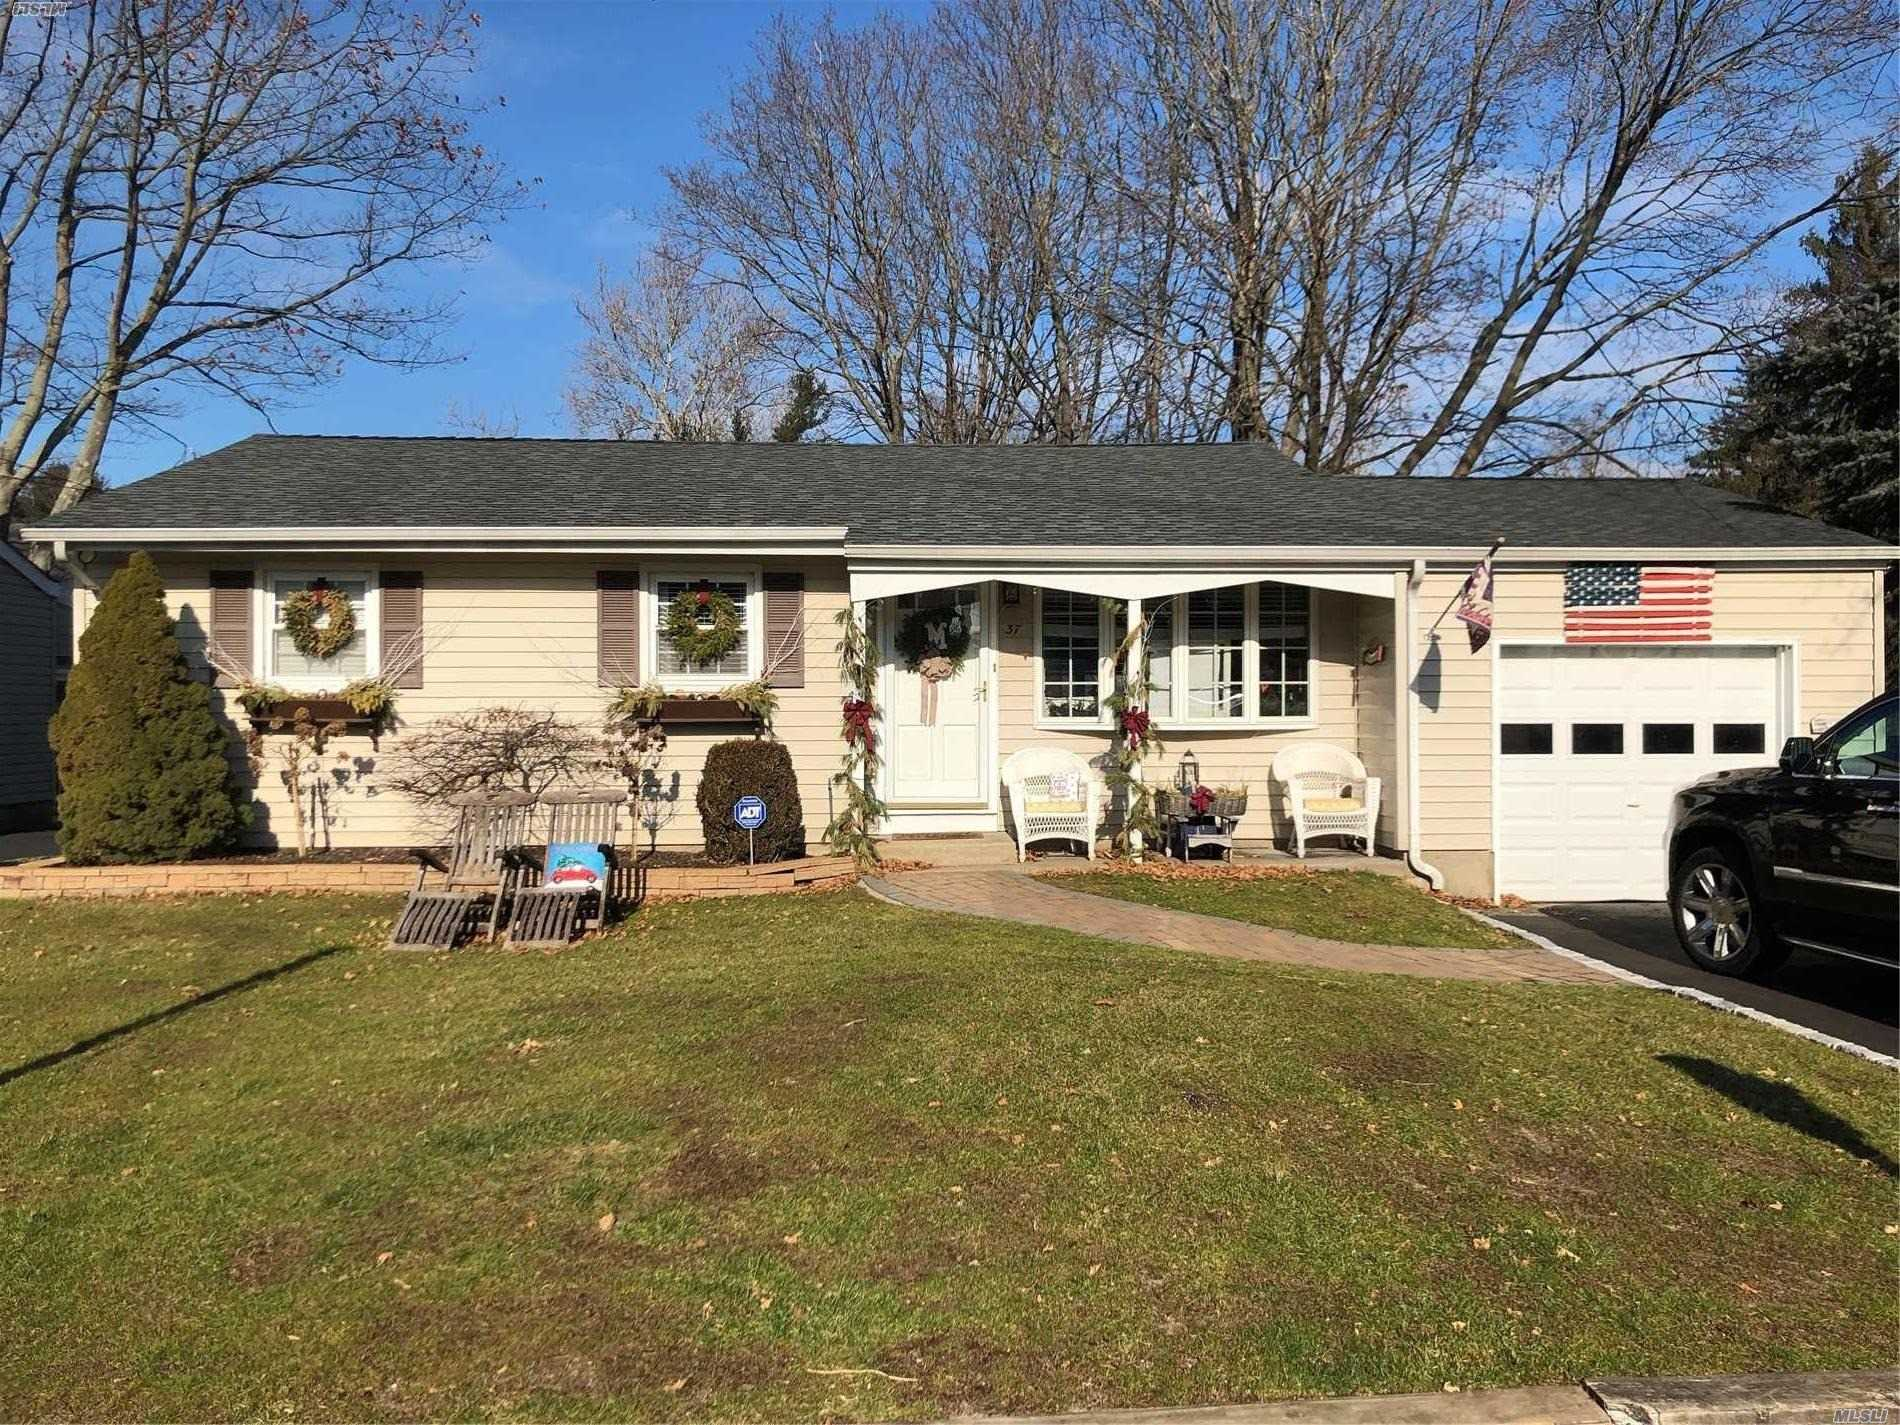 37 Forester Ct - Northport, New York